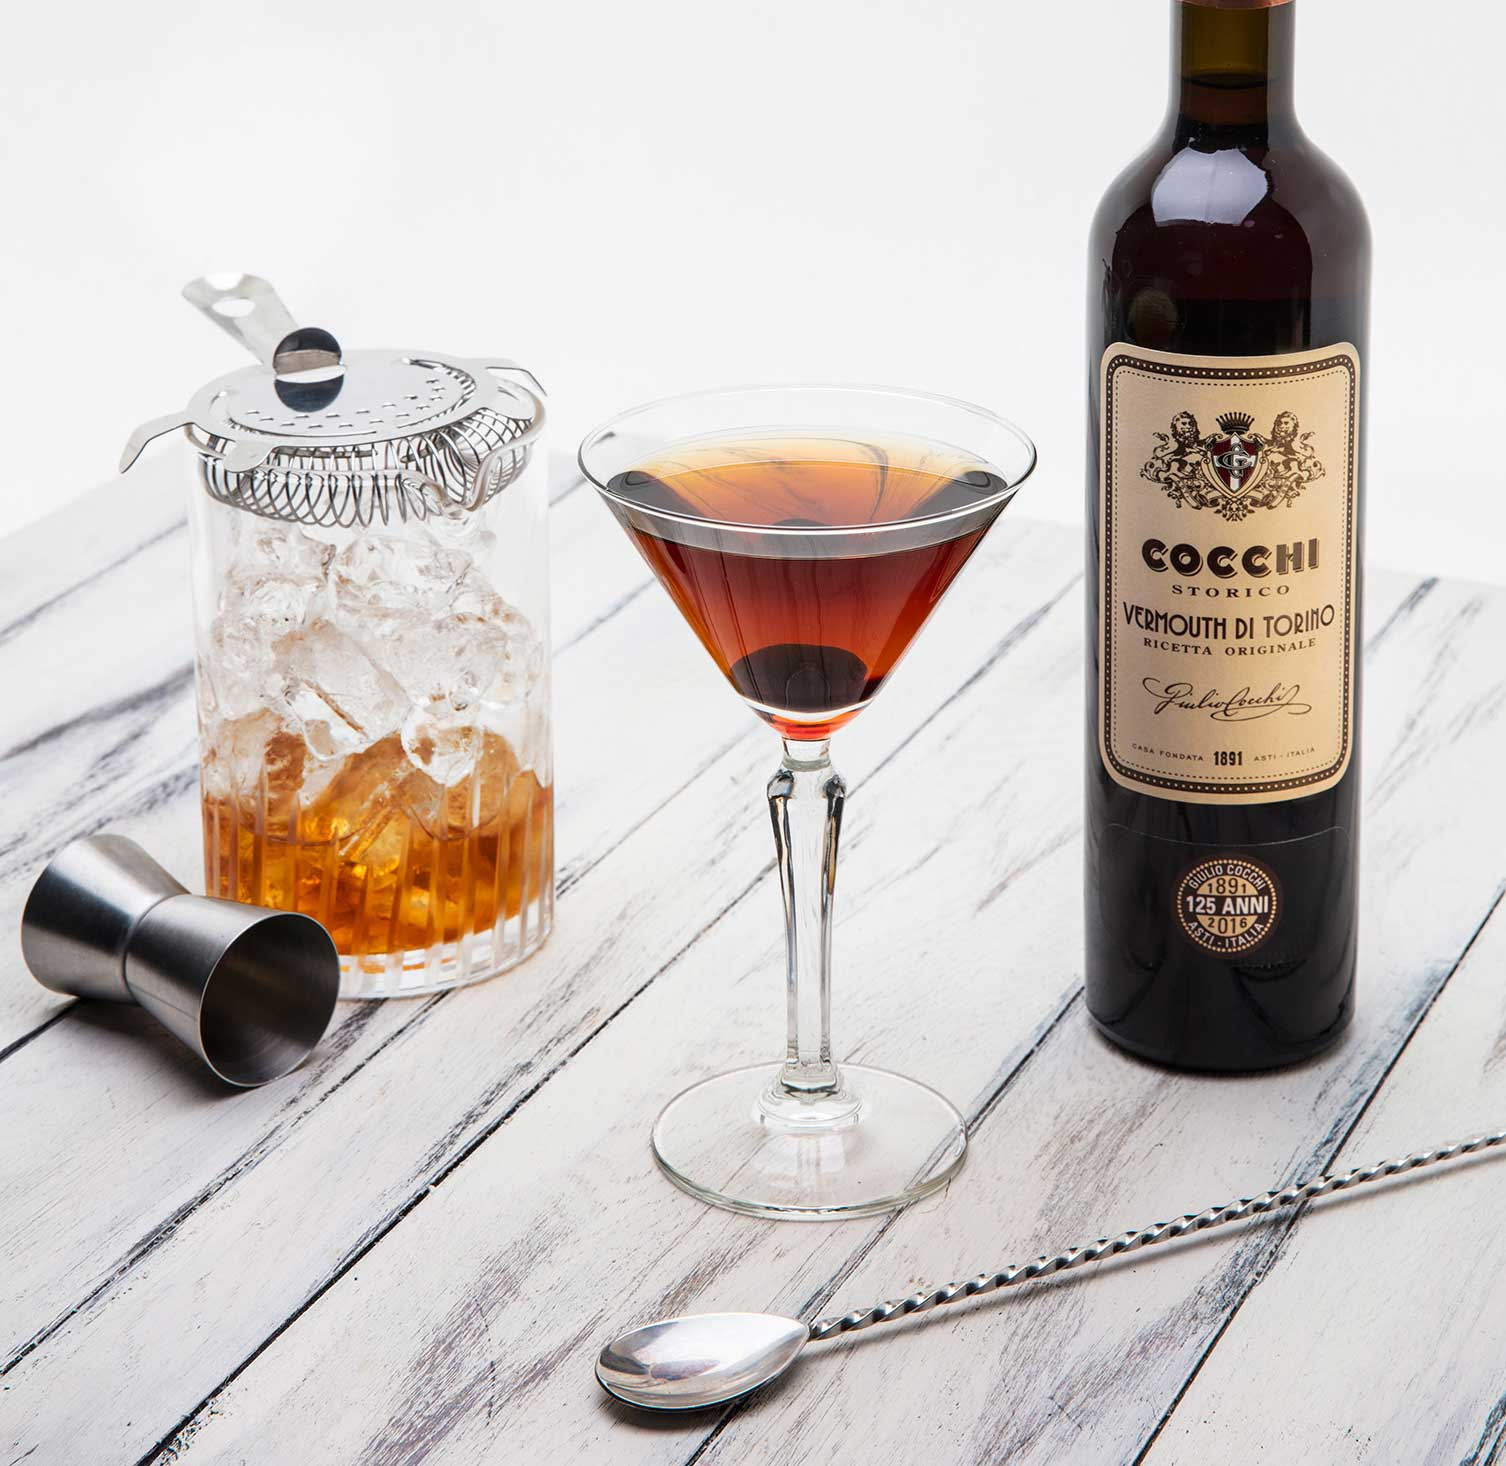 An example of the Rye Manhattan, the mixed drink (cocktail) featuring rye whiskey, Cocchi Vermouth di Torino, and Angostura bitters; photo by Giulio Cocchi Spumanti Srl